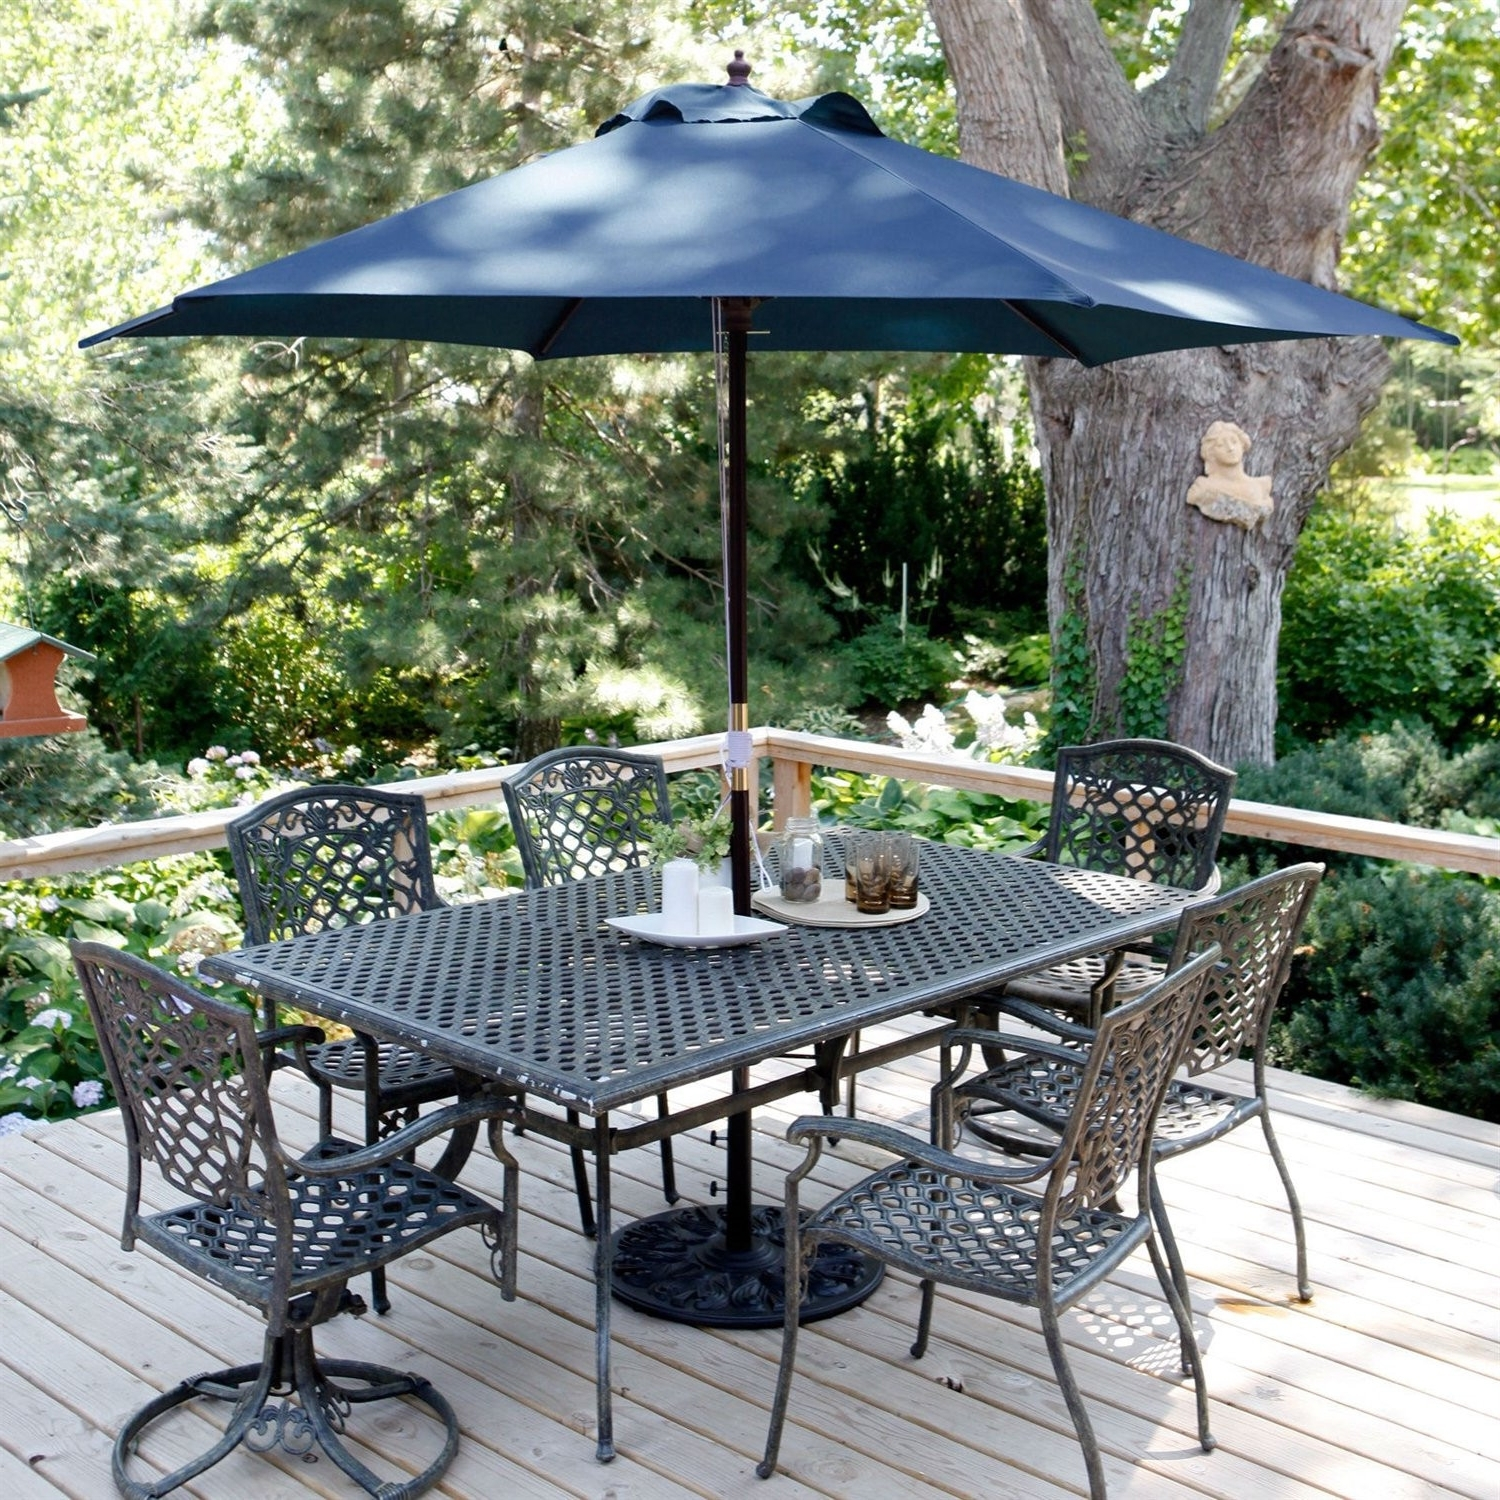 11 Ft Patio Umbrella Brilliant Cheap Patio Umbrellas Fresh Concept Inside Preferred 11 Ft Patio Umbrellas (View 1 of 20)